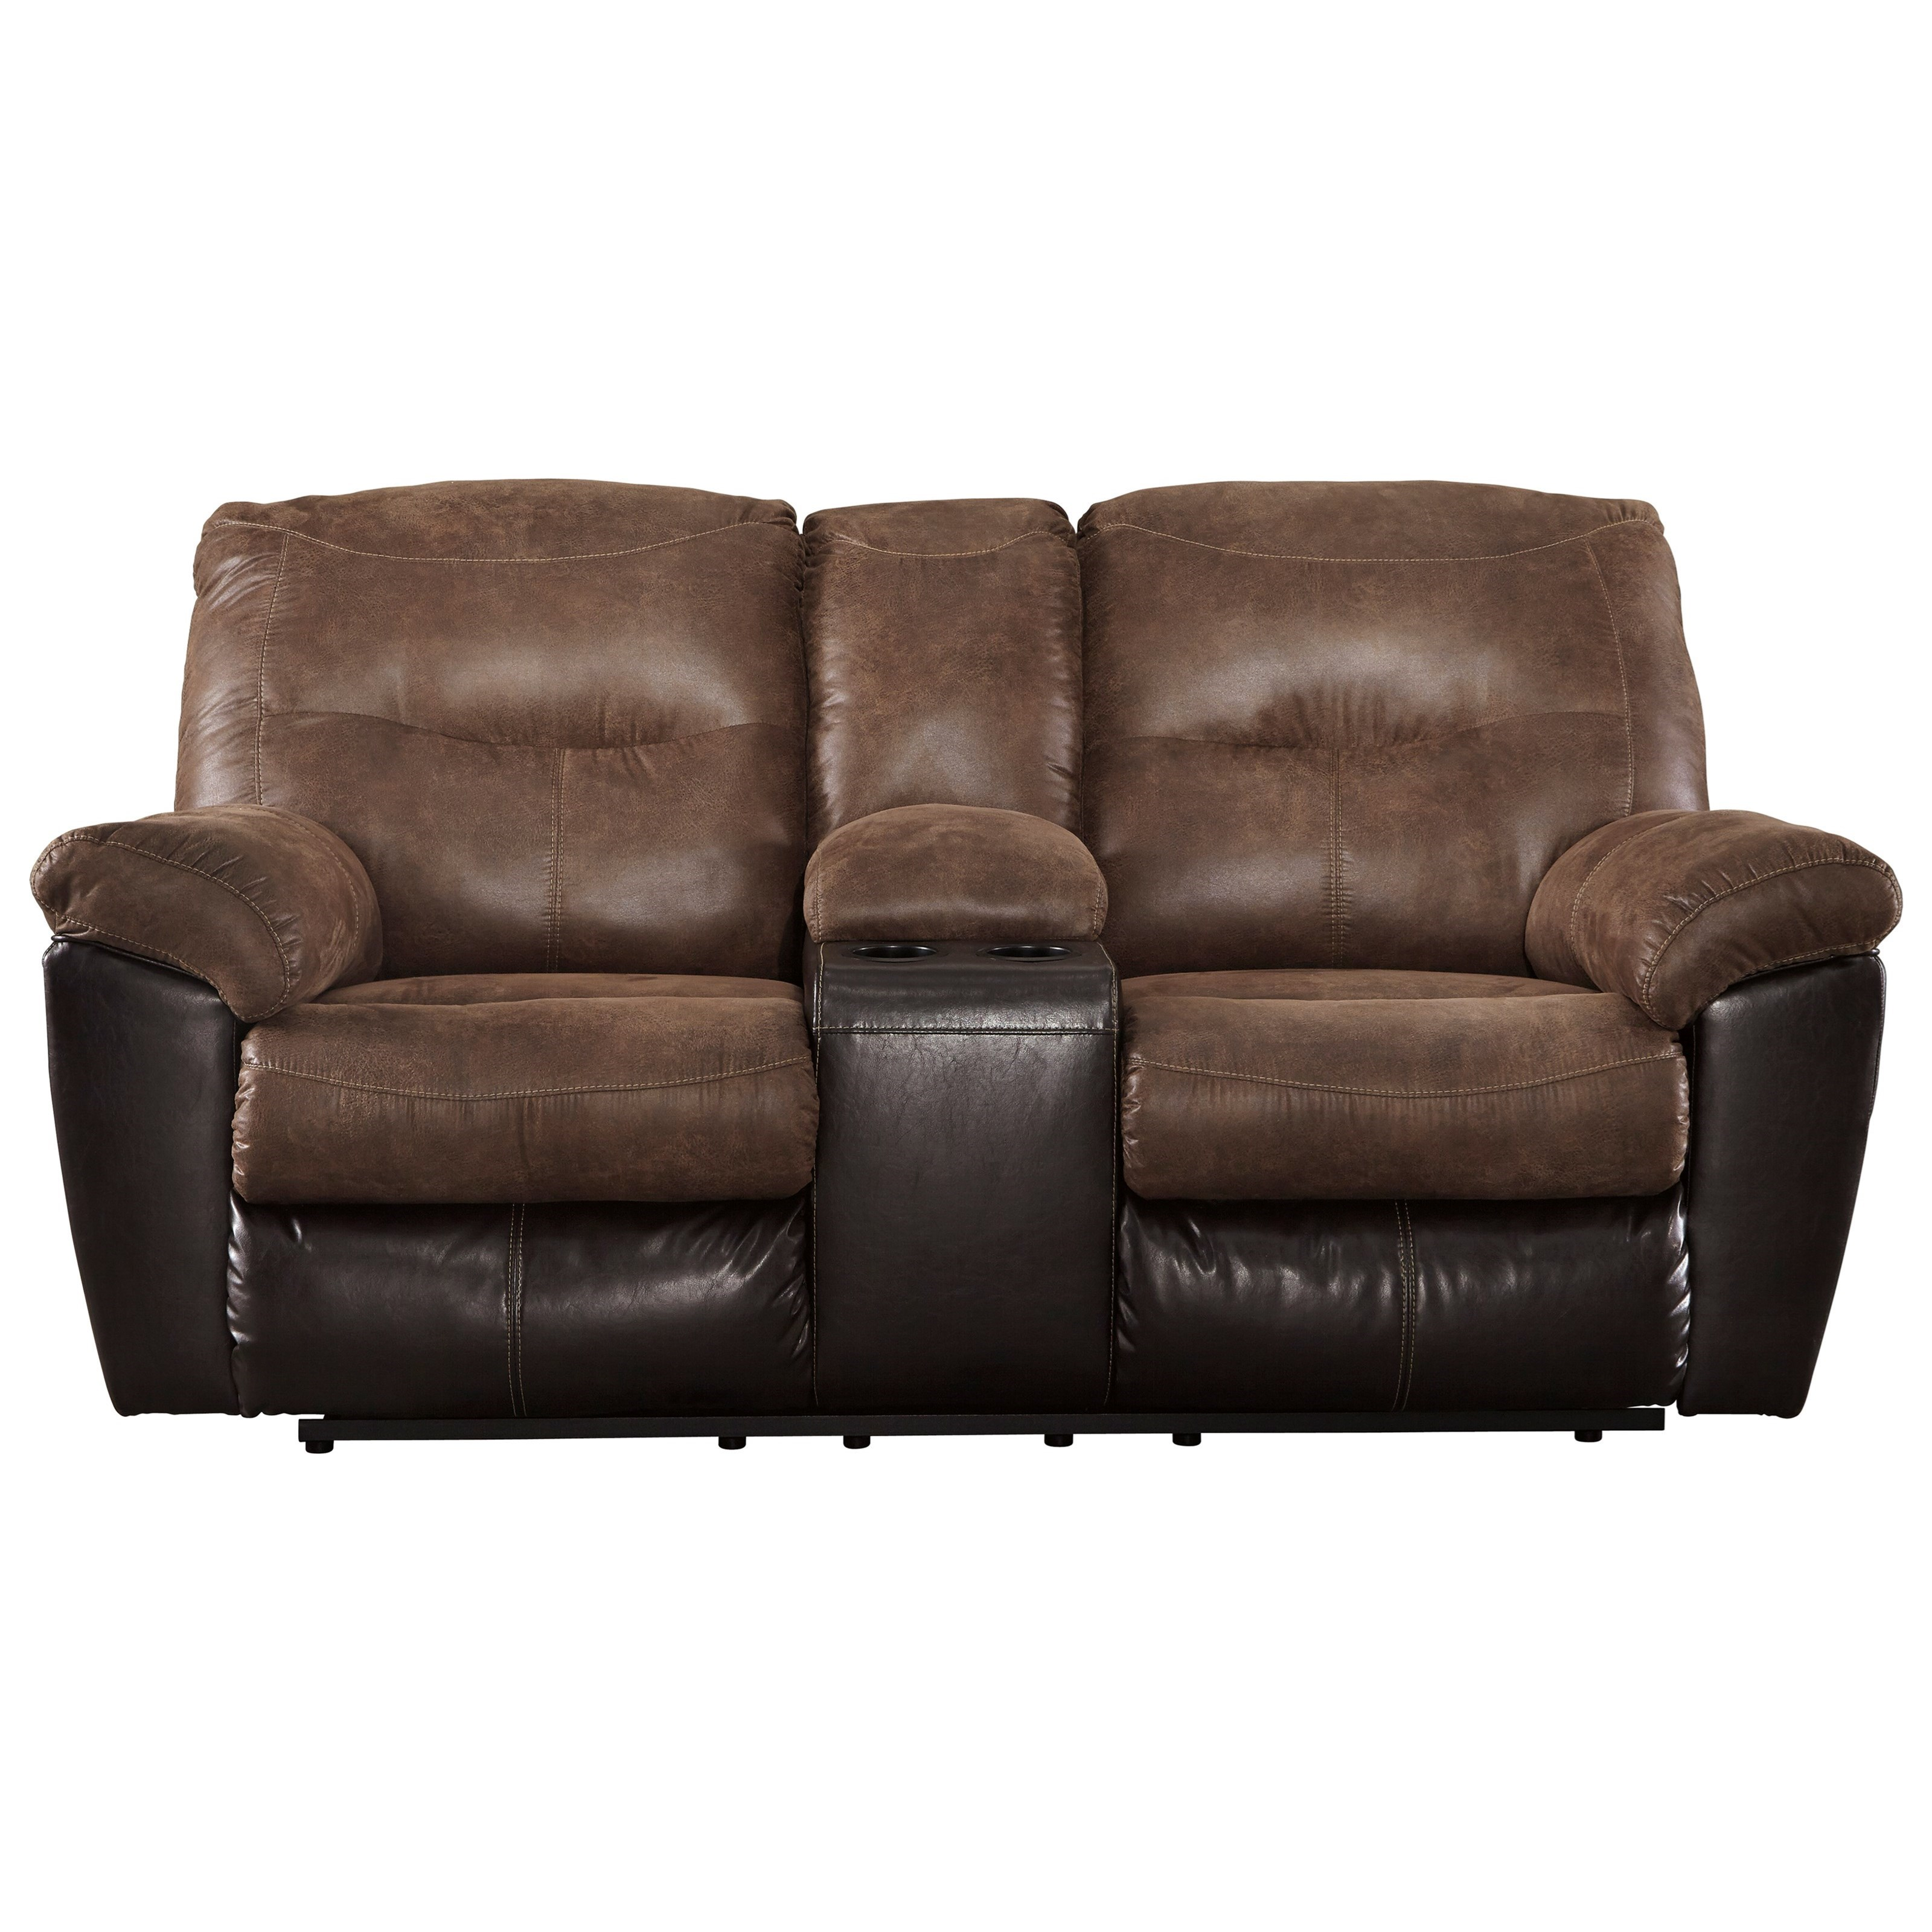 Follett Double Reclining Loveseat w/ Console by Signature Design by Ashley at Reid's Furniture